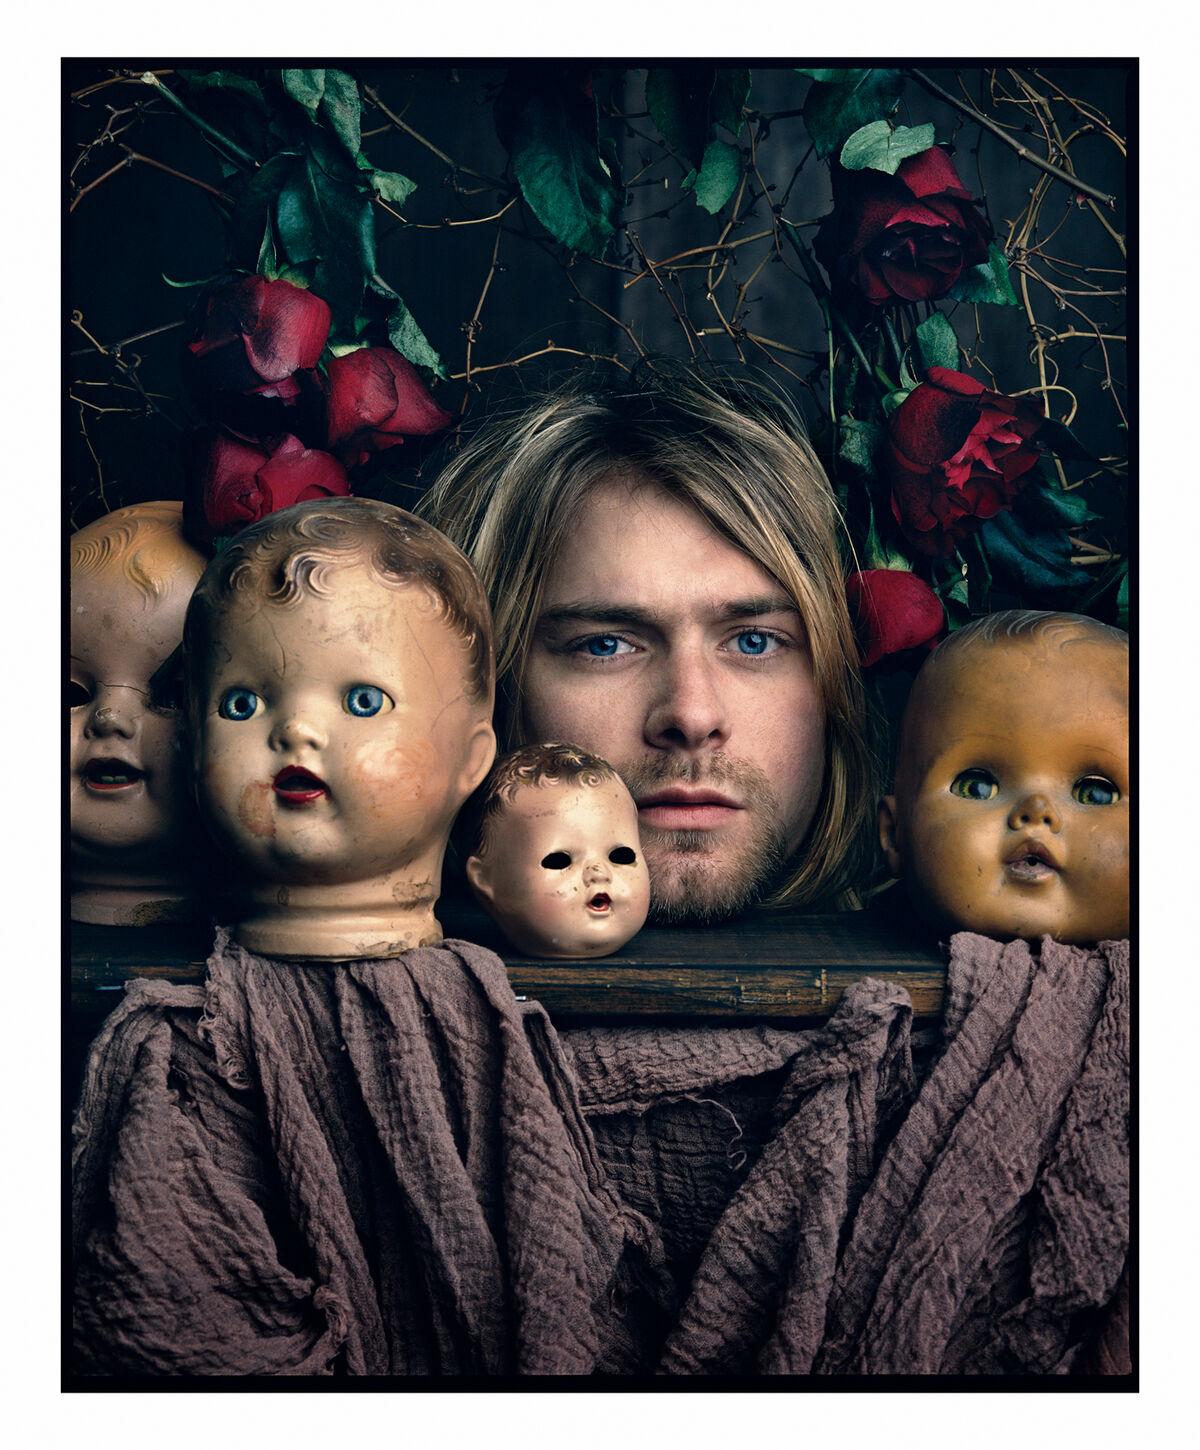 Mark Seliger, Kurt Cobain, Kalamazoo, Michigan, 1993. Courtesy of the artist.